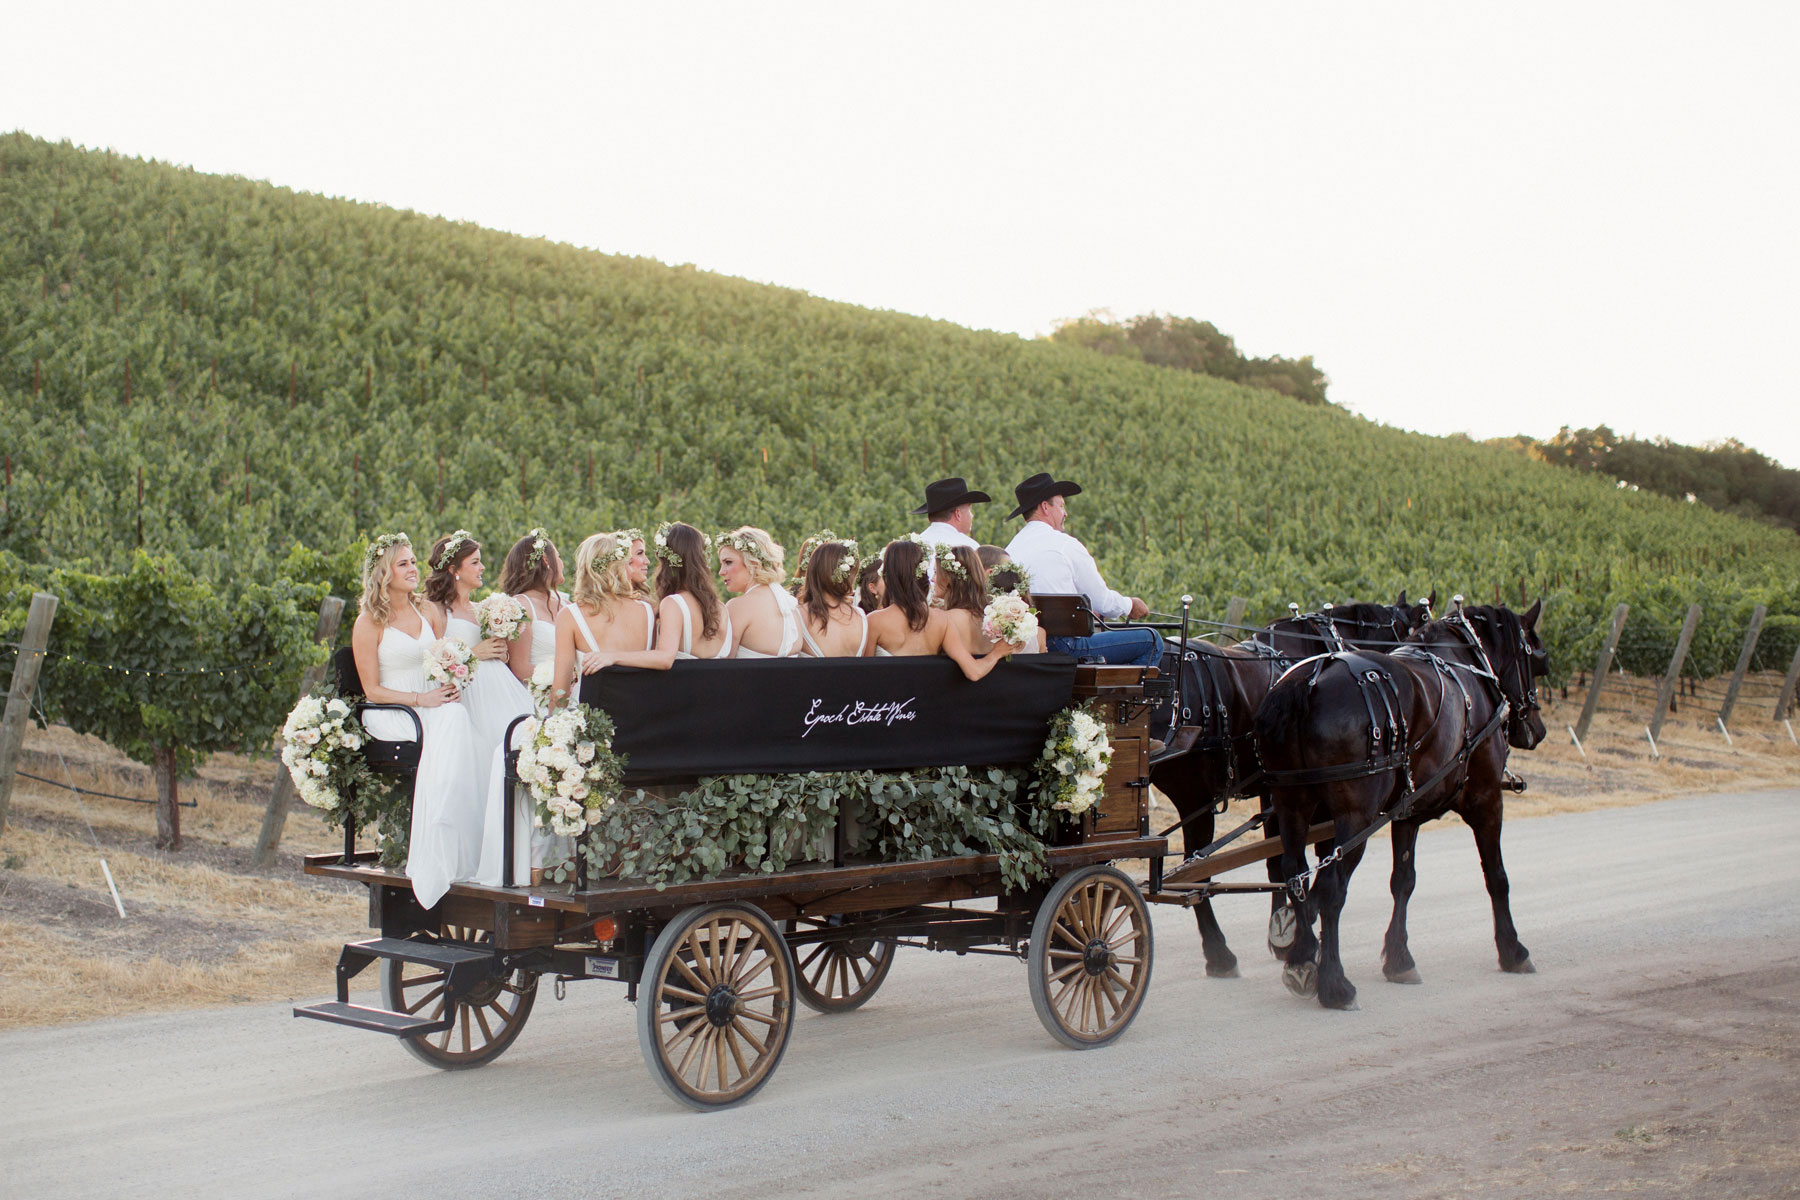 Horse drawn carriage wedding party transportation